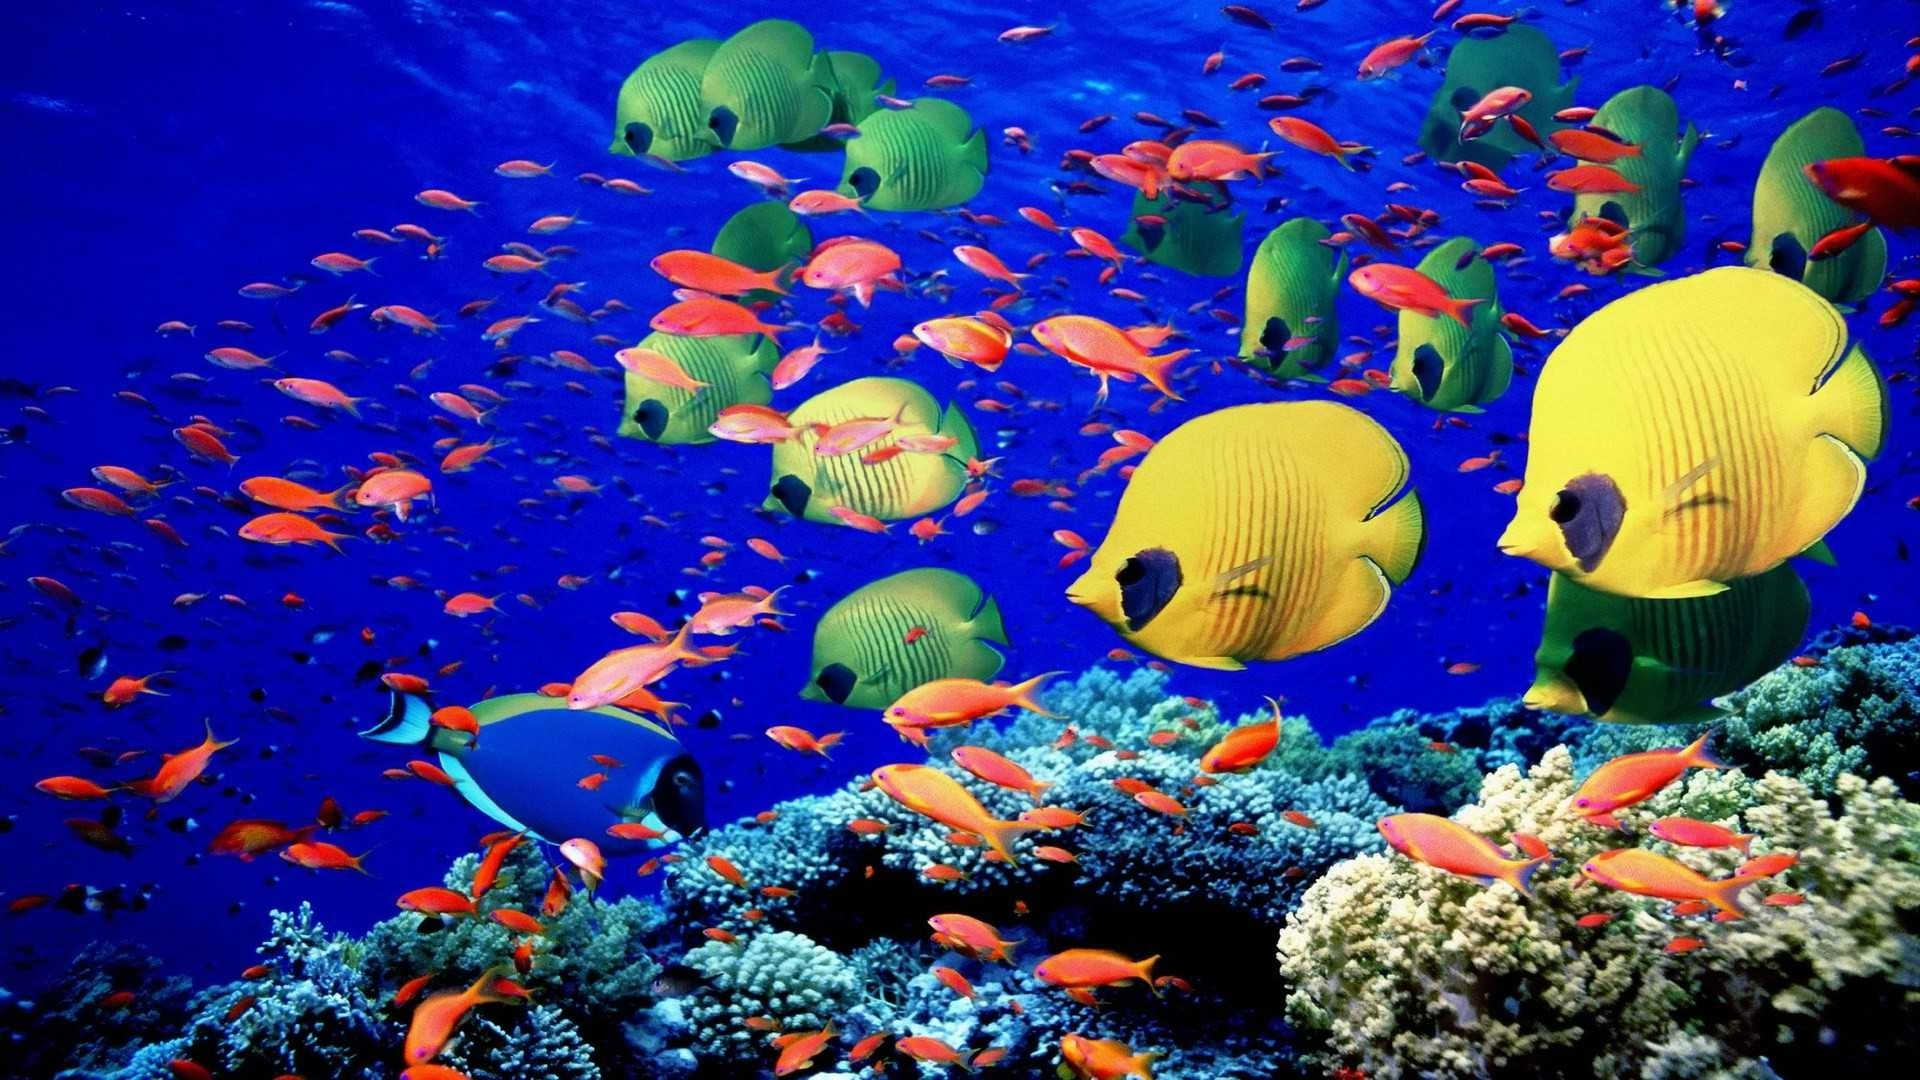 Underwater swim coral reef colors bright sea life wallpaper background